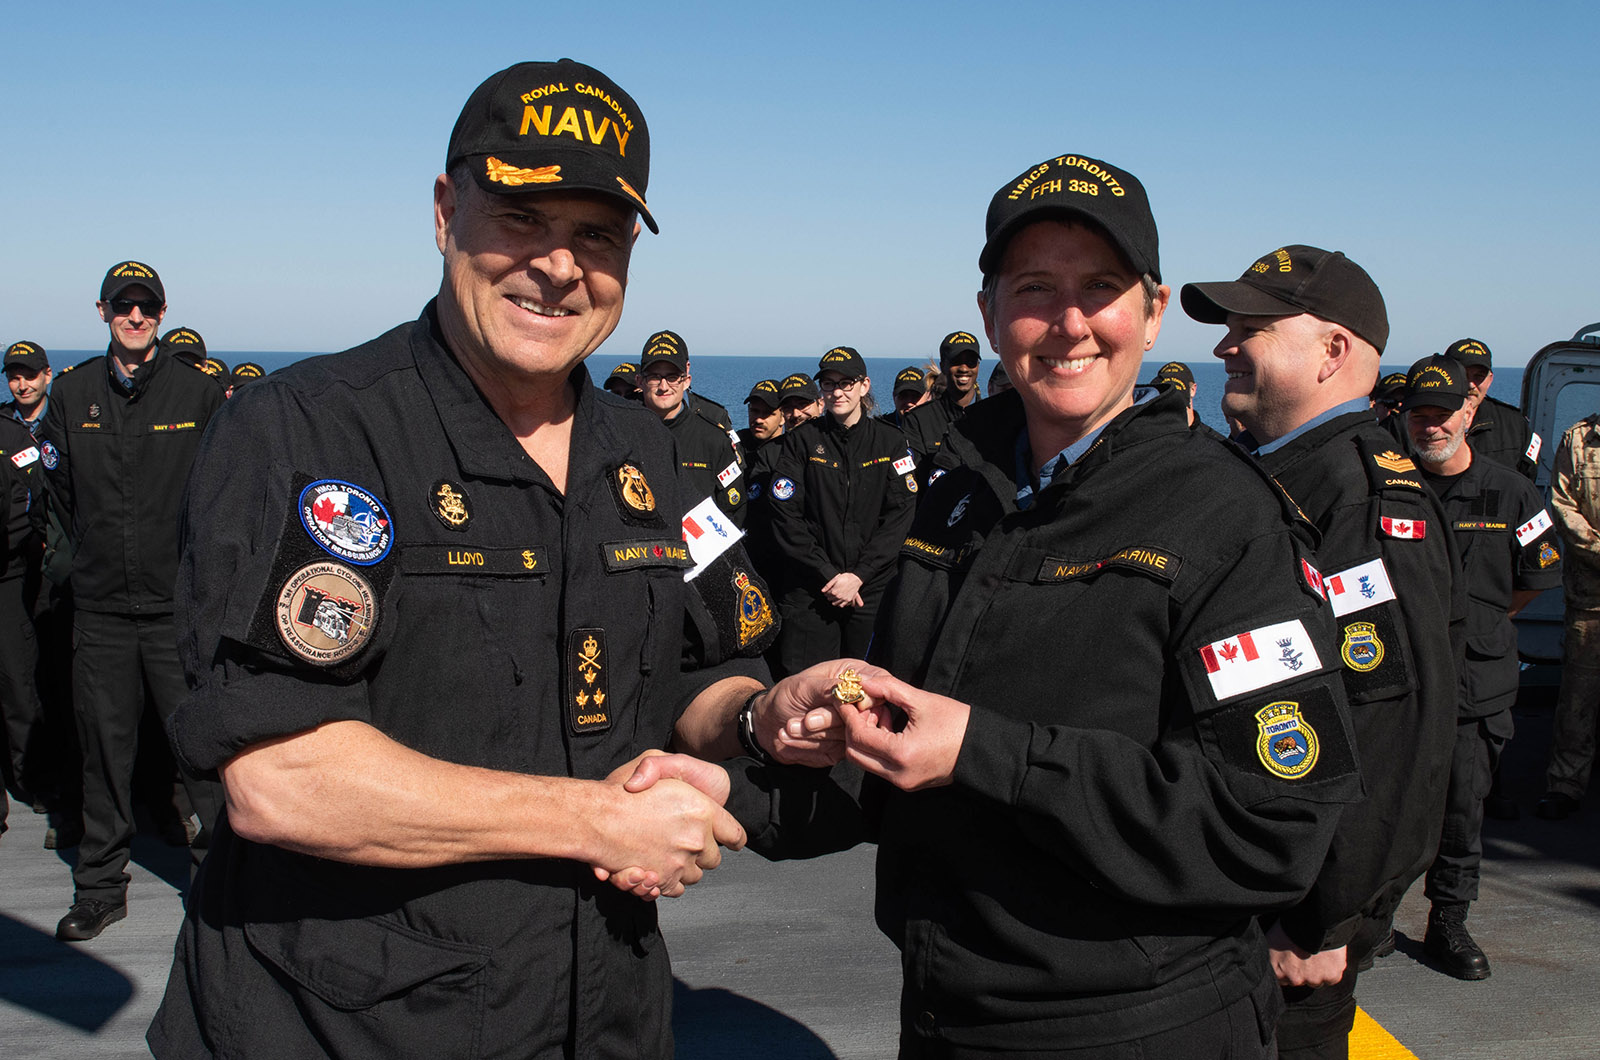 Vice-Admiral (retired) Ron Lloyd, former Commander Royal Canadian Navy (left) presents Chief Petty Officer 1st Class Alena Mondelli, Coxswain of HMCS Toronto, with the Sea Service Insignia – Gold awarded for 1460 days at sea, on the flight deck while deployed in the Black Sea during Operation REASSURANCE ROTO 10, April 4, 2019.